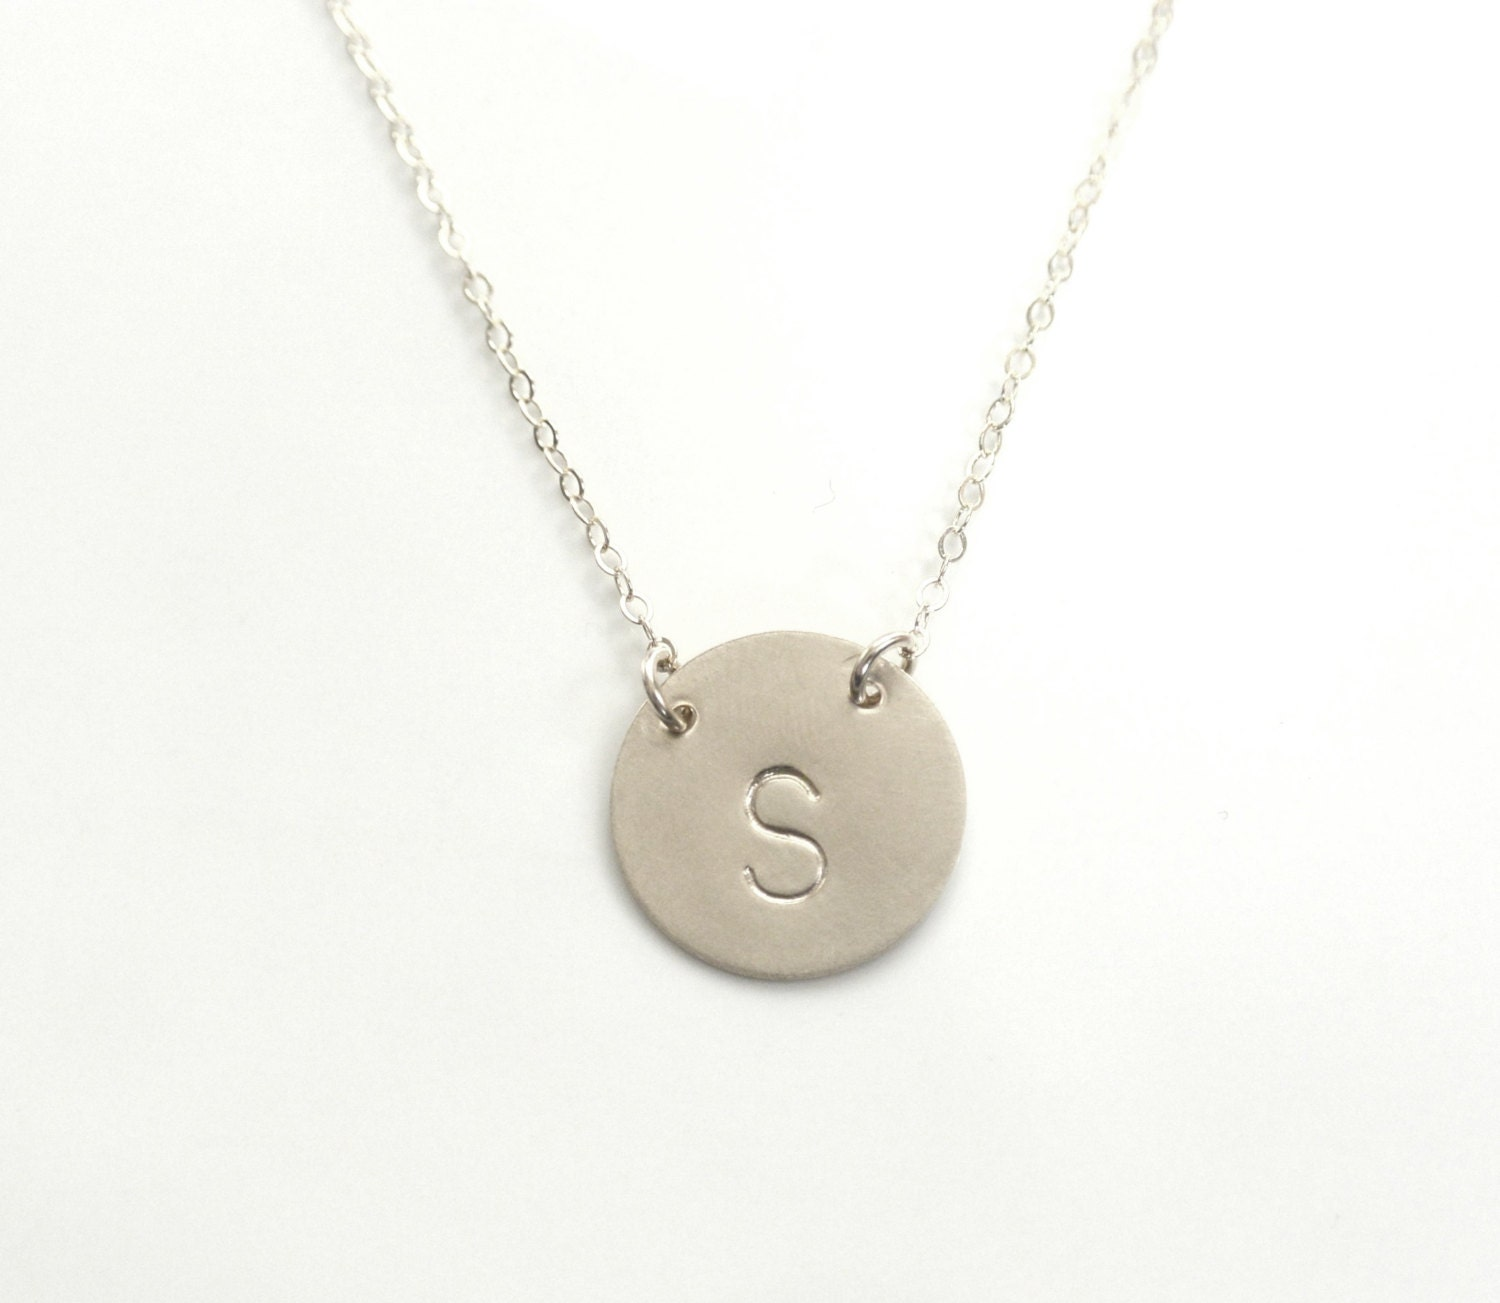 personalized necklace large initial necklace silver monogram